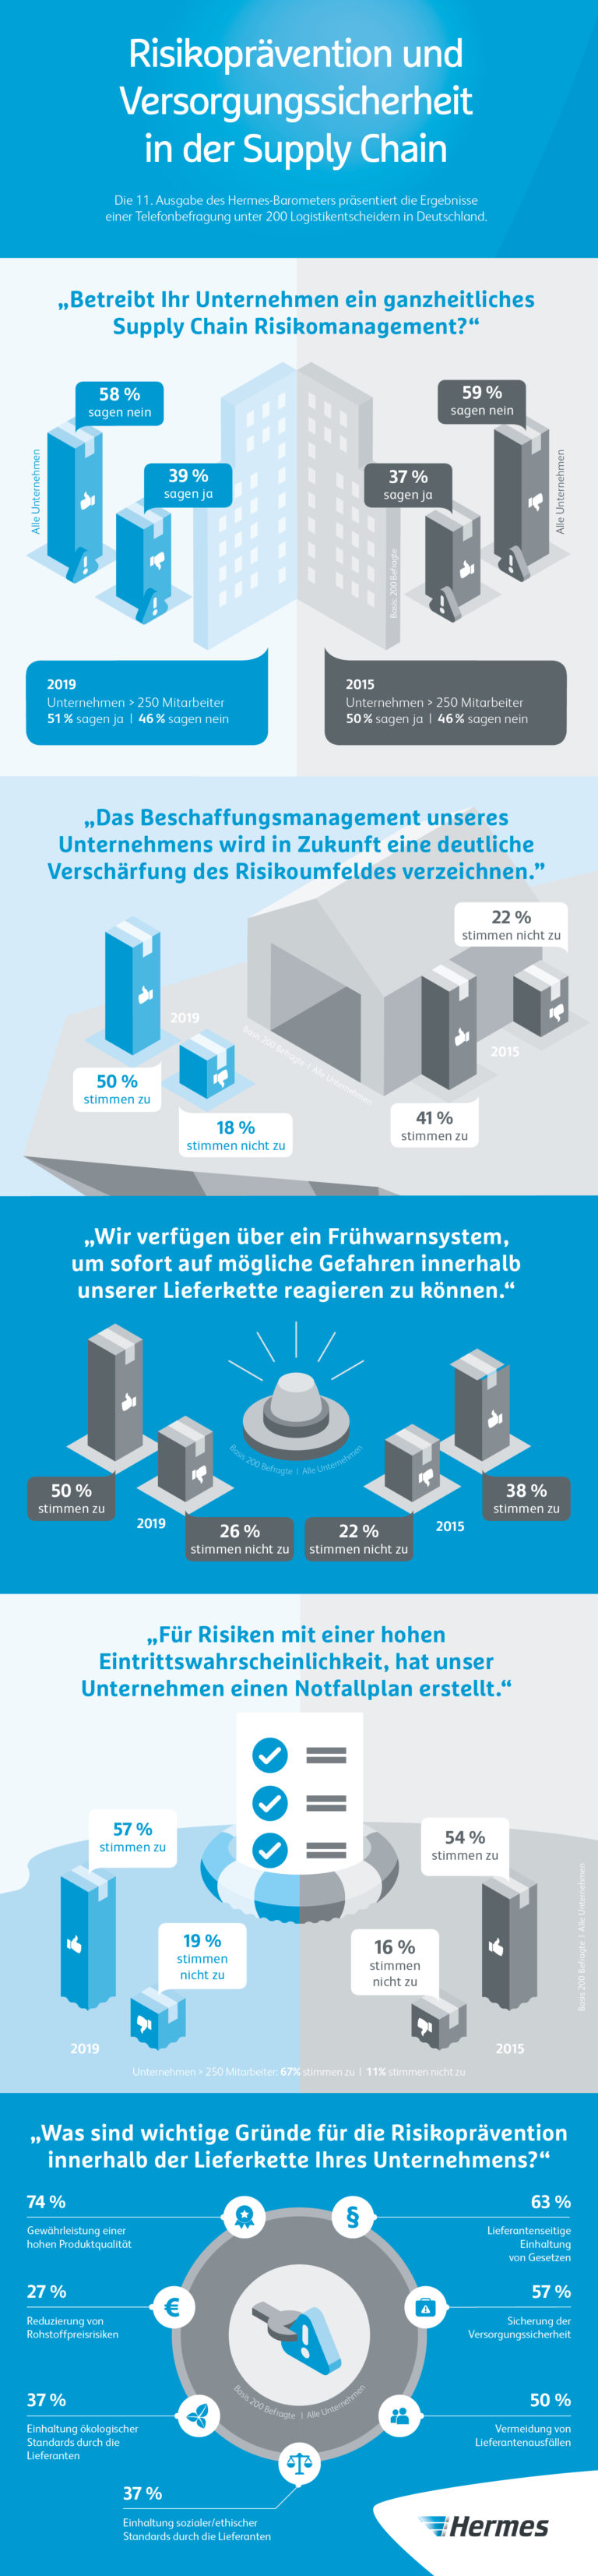 Infografik: Hermes Barometer 11: Risikoprävention und Versorgungssicherheit in der Supply Chain